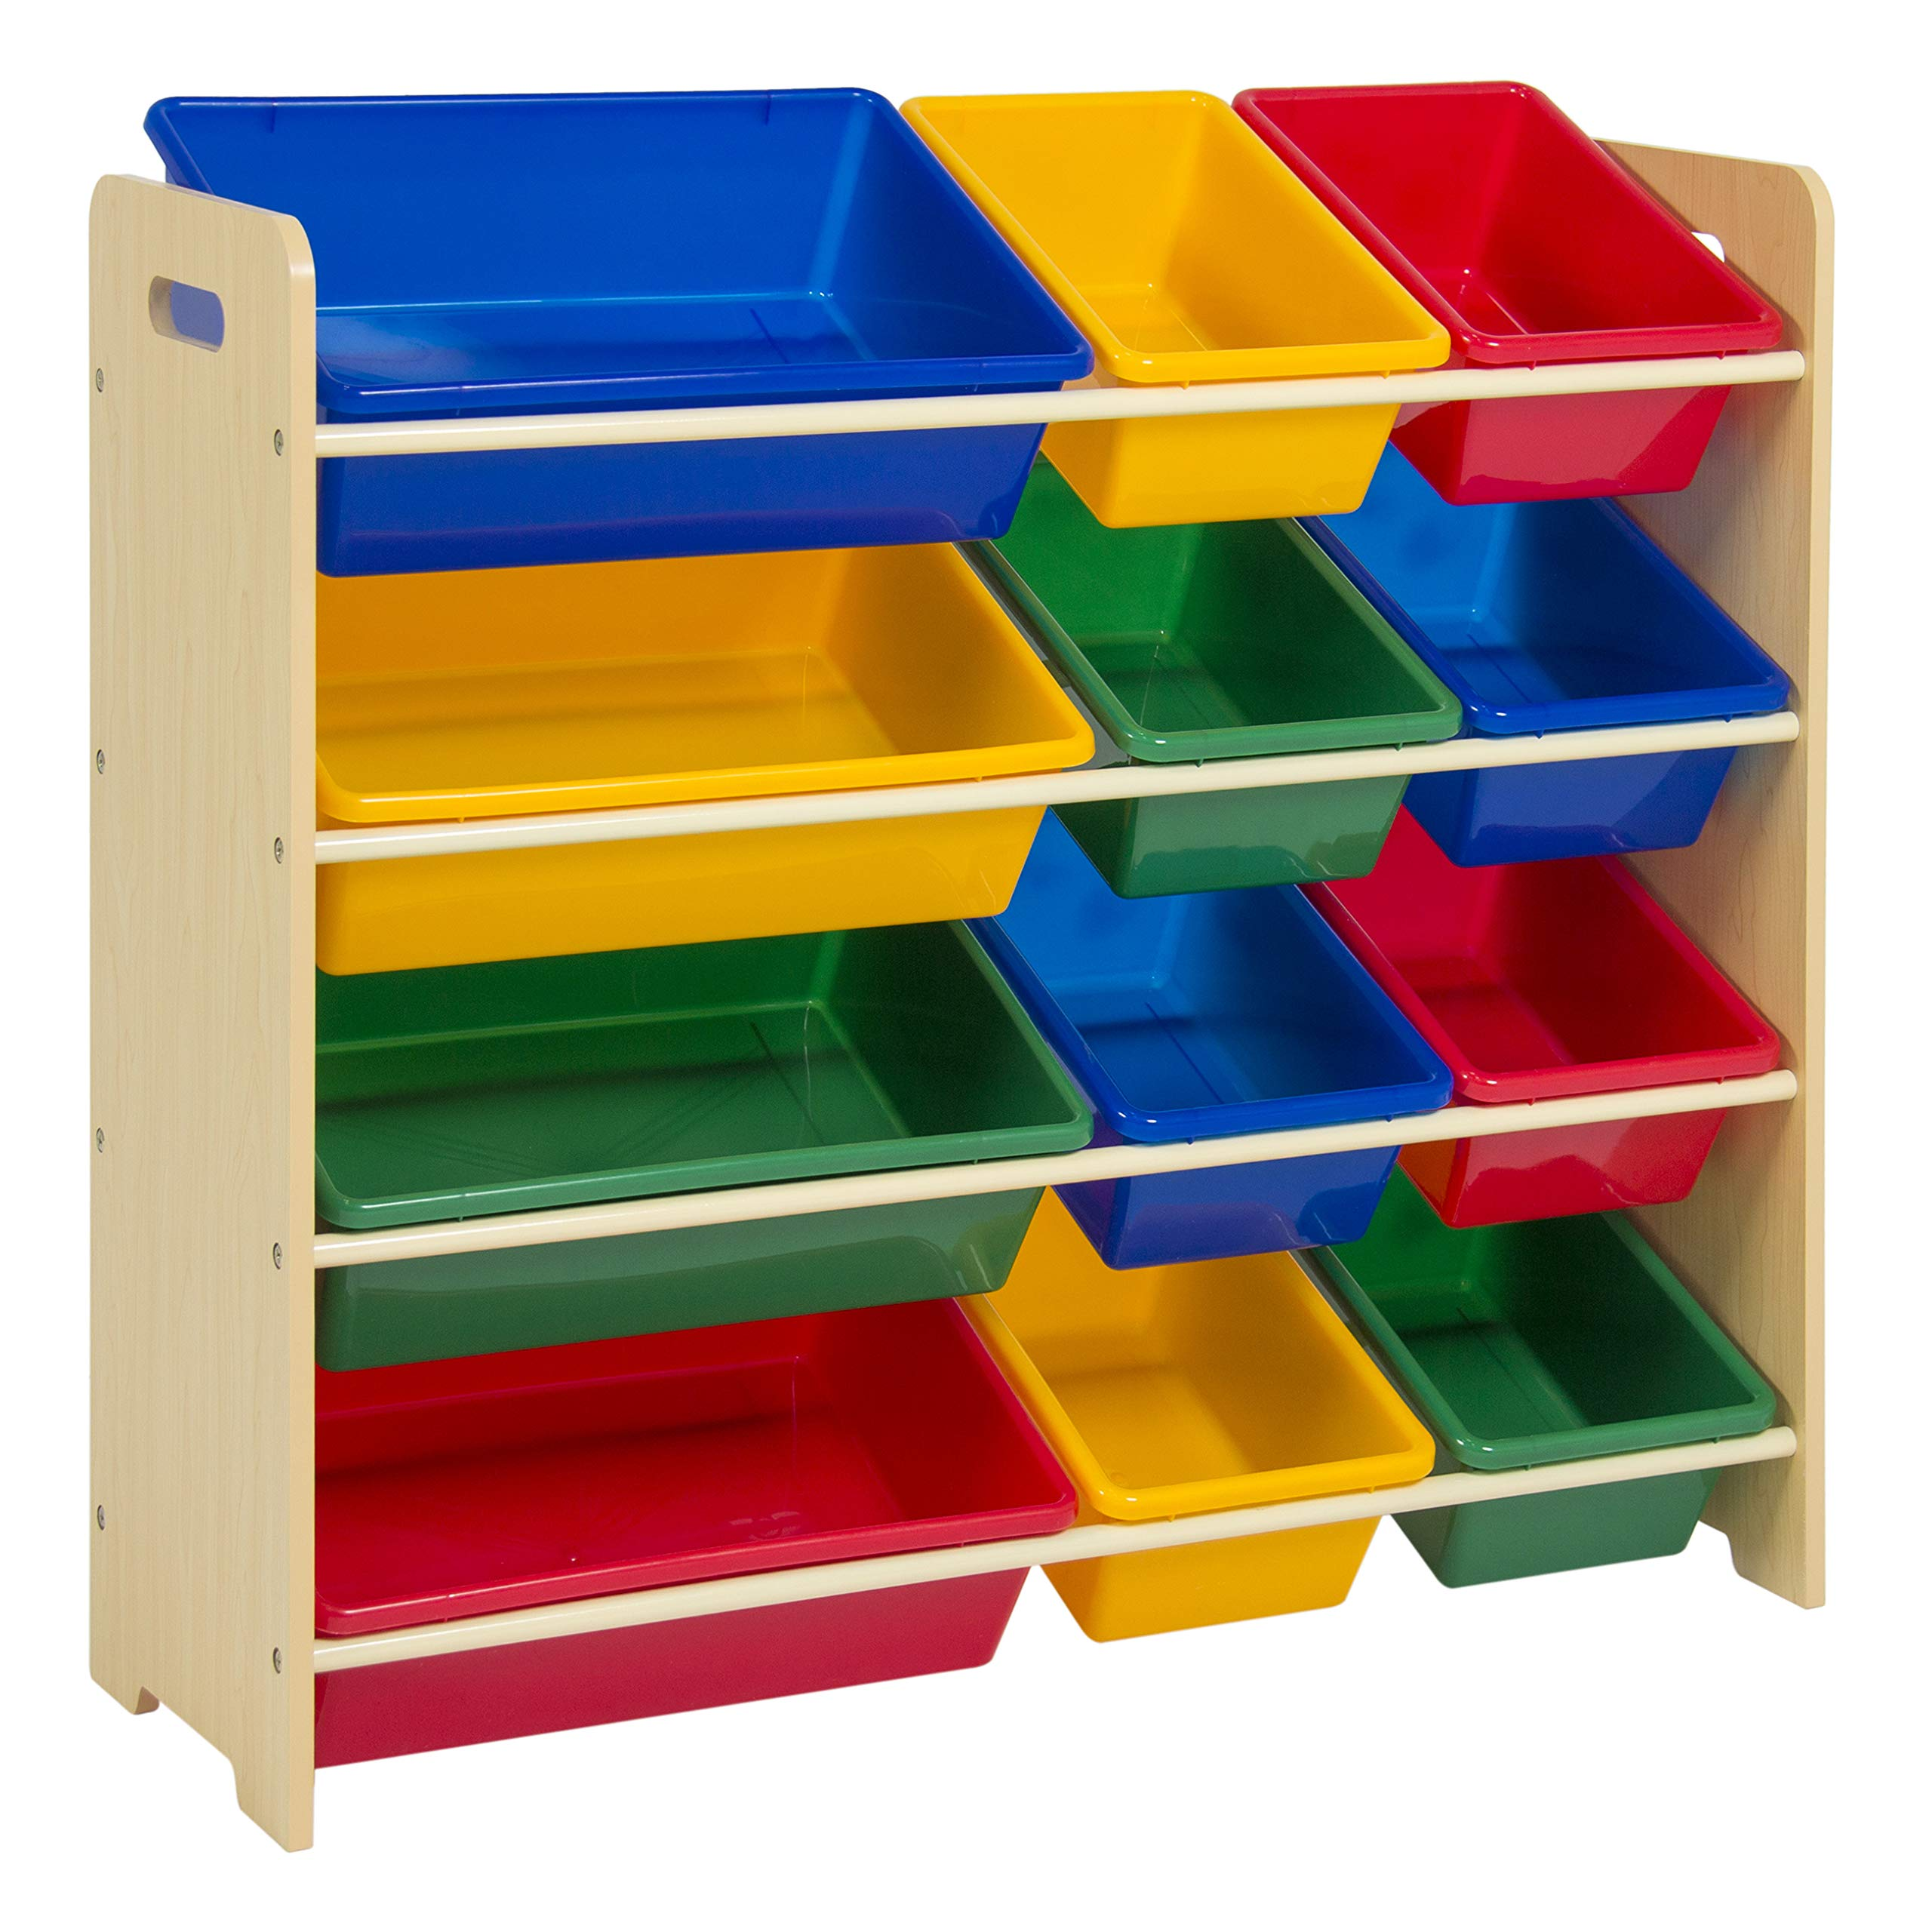 Best Choice Products 4-Tier Kids Wood Toy Storage Organizer Shelves Rack for Playroom, Bedroom, Living Room, Class Room w/ 12 Easy-To-Clean Removable Plastic Bins - Multicolor by Best Choice Products